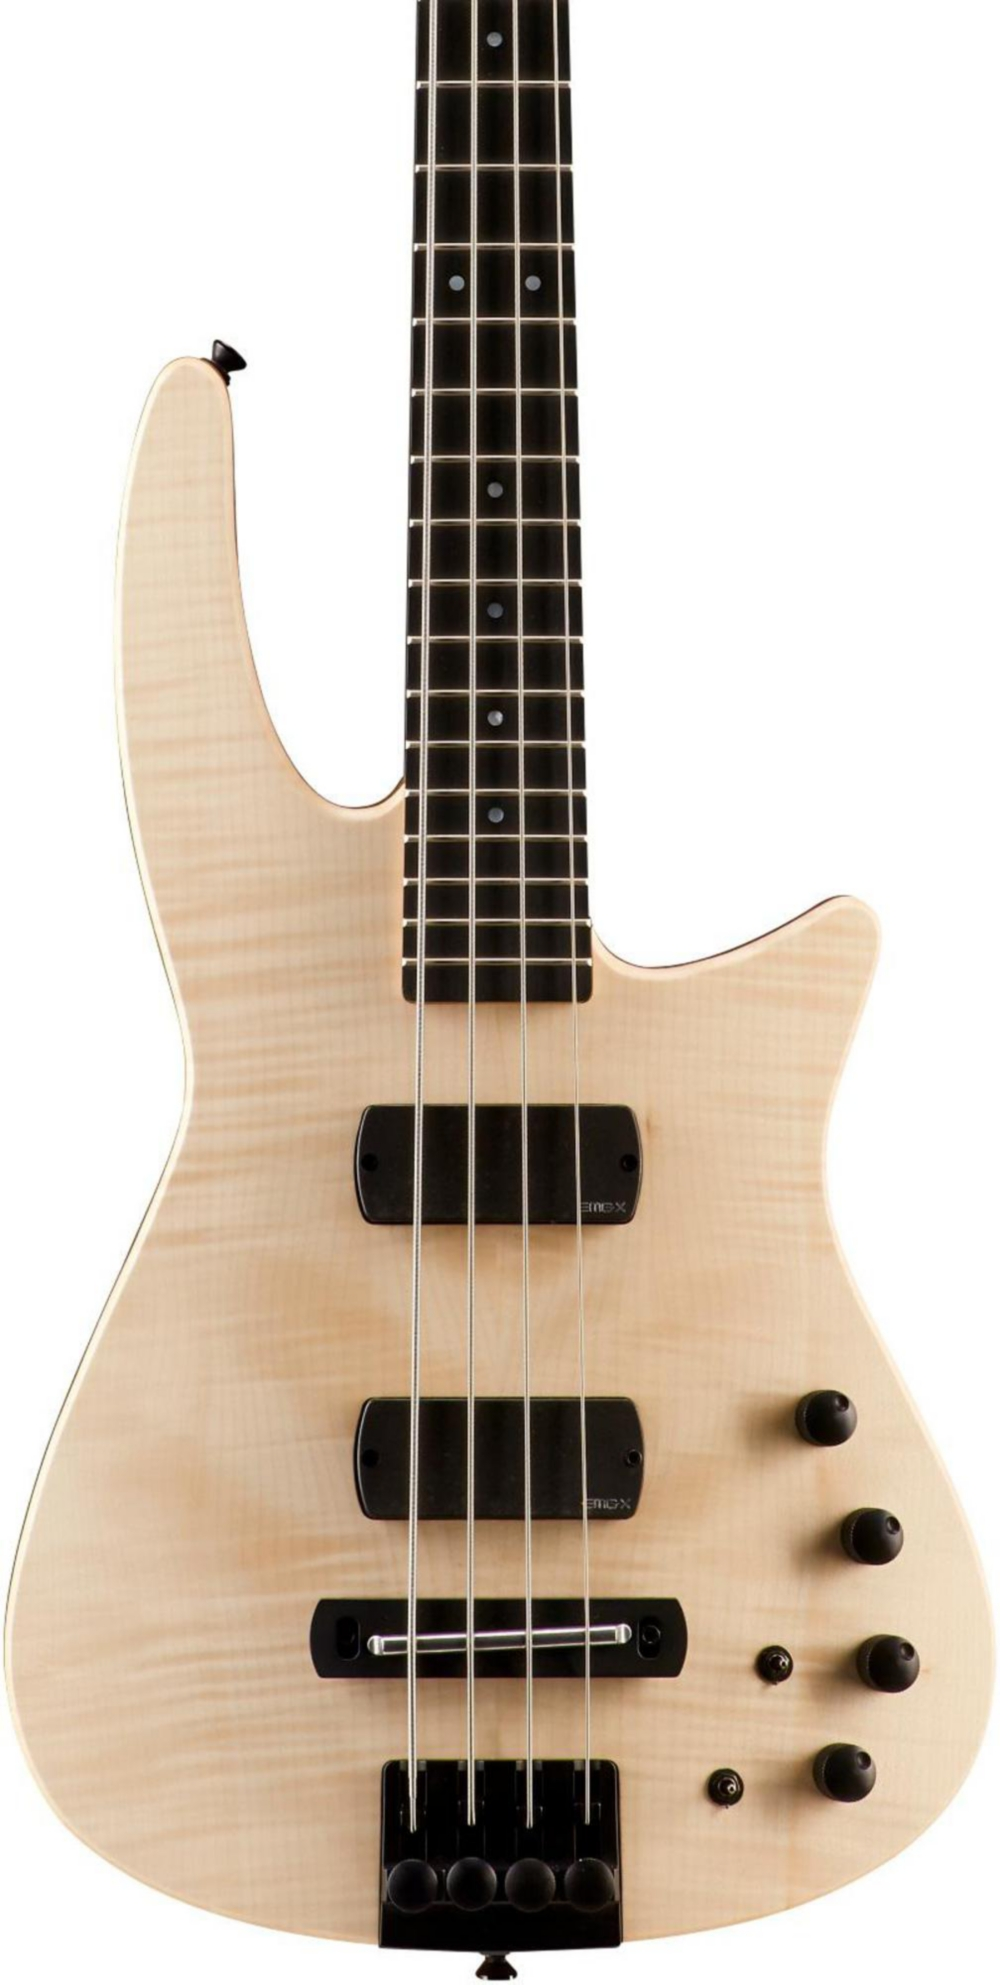 CR4 Electric Bass Guitar by NS Design